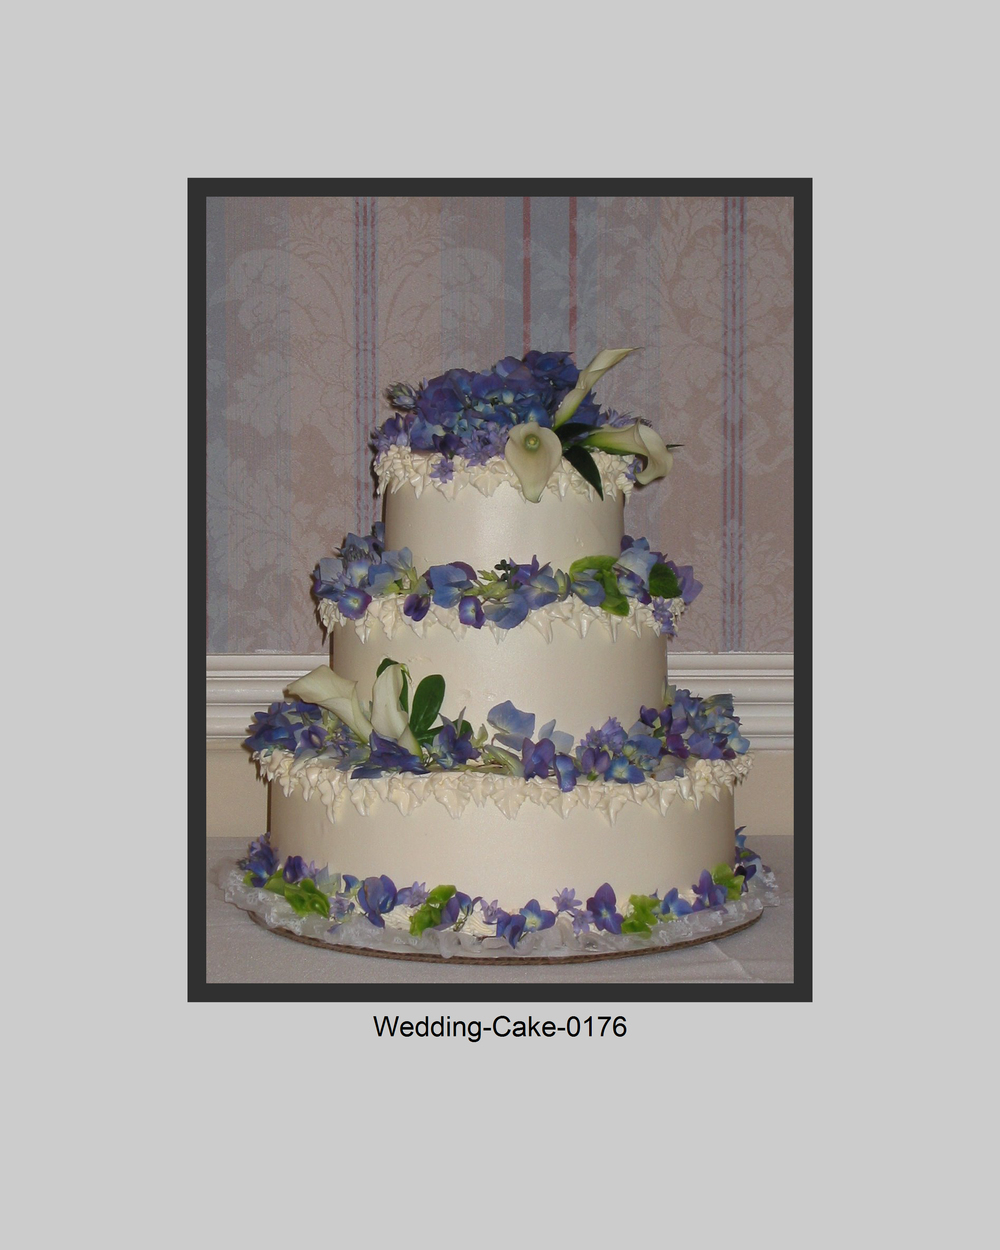 Wedding-Cake-Prints-0176.jpg